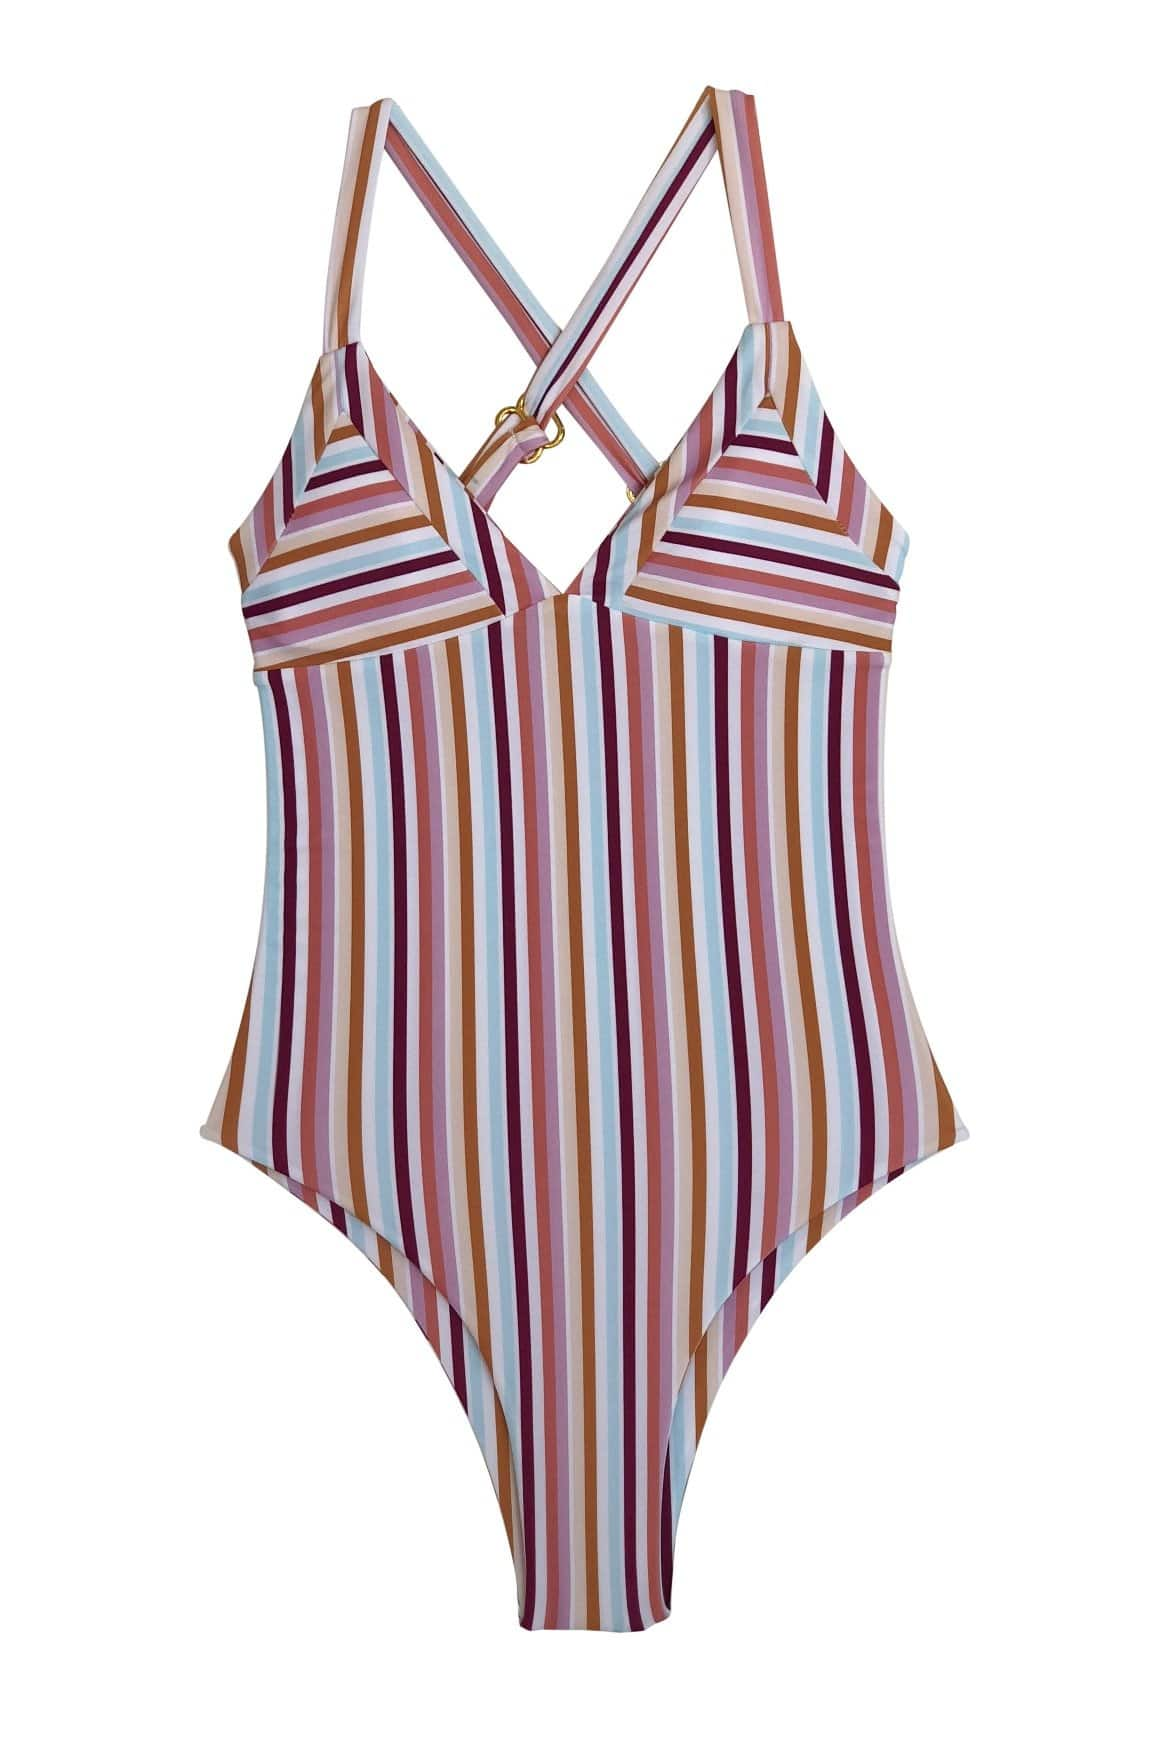 Kailua One Piece Cheeky Coverage Summer Stripe